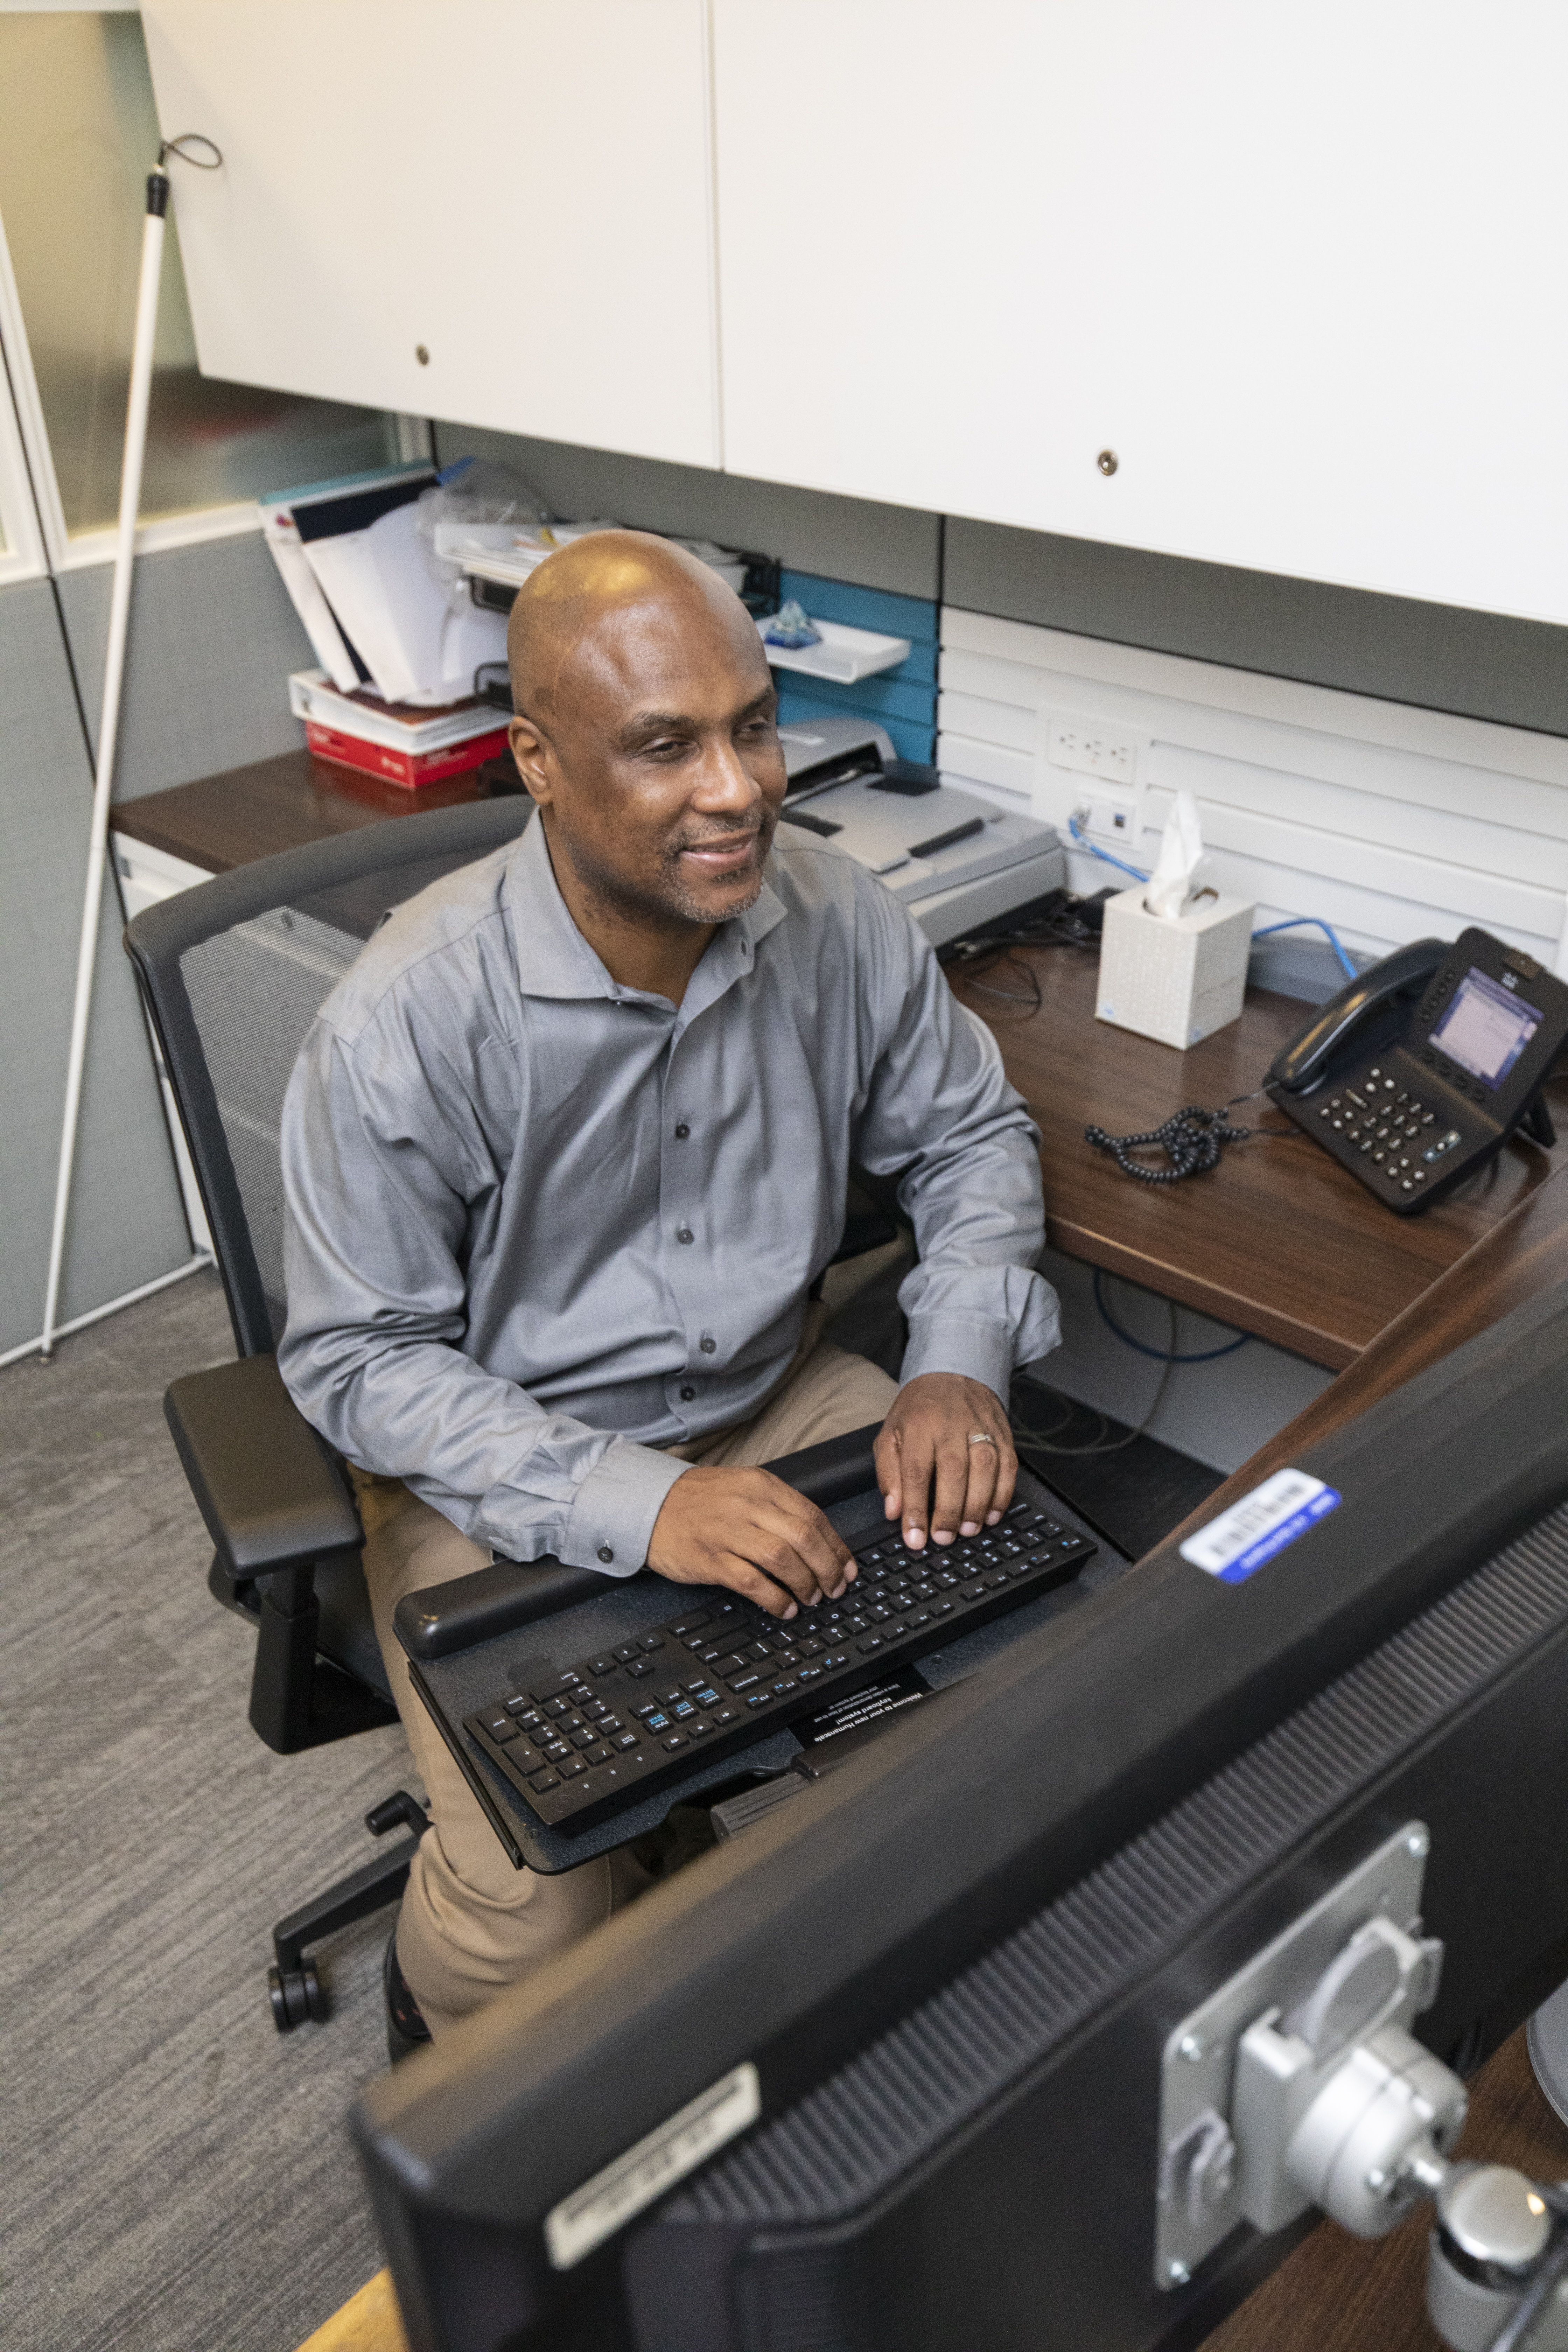 A man works at his computer in a cubicle with a long white cane leaning in the corner behind him.